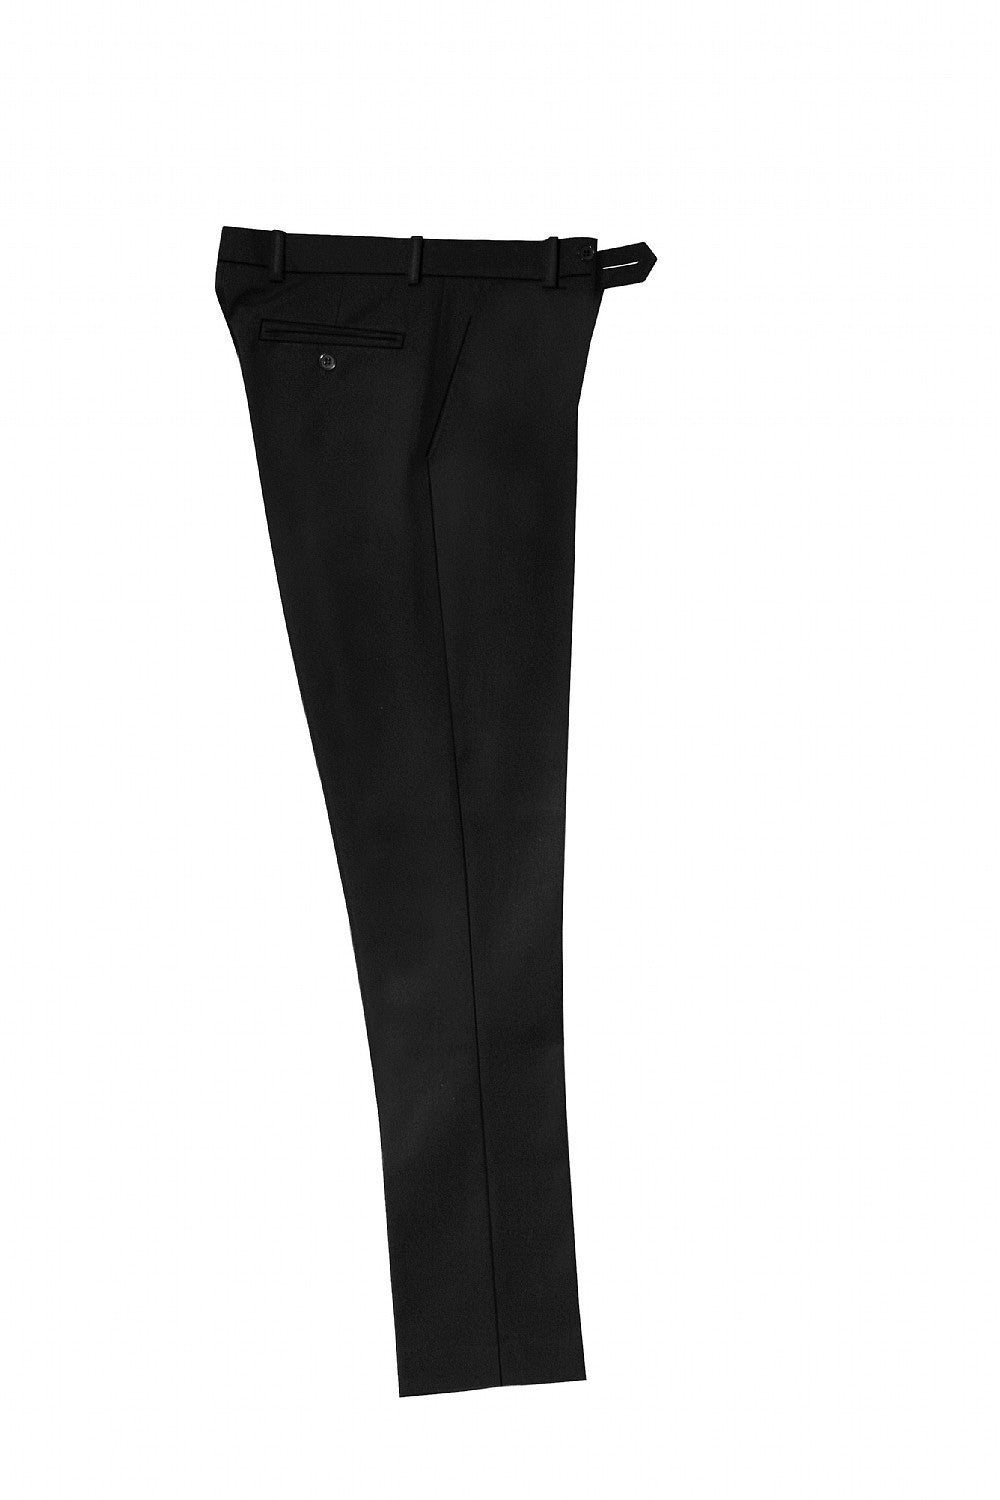 Mens Skinny Trouser - Slimbridge